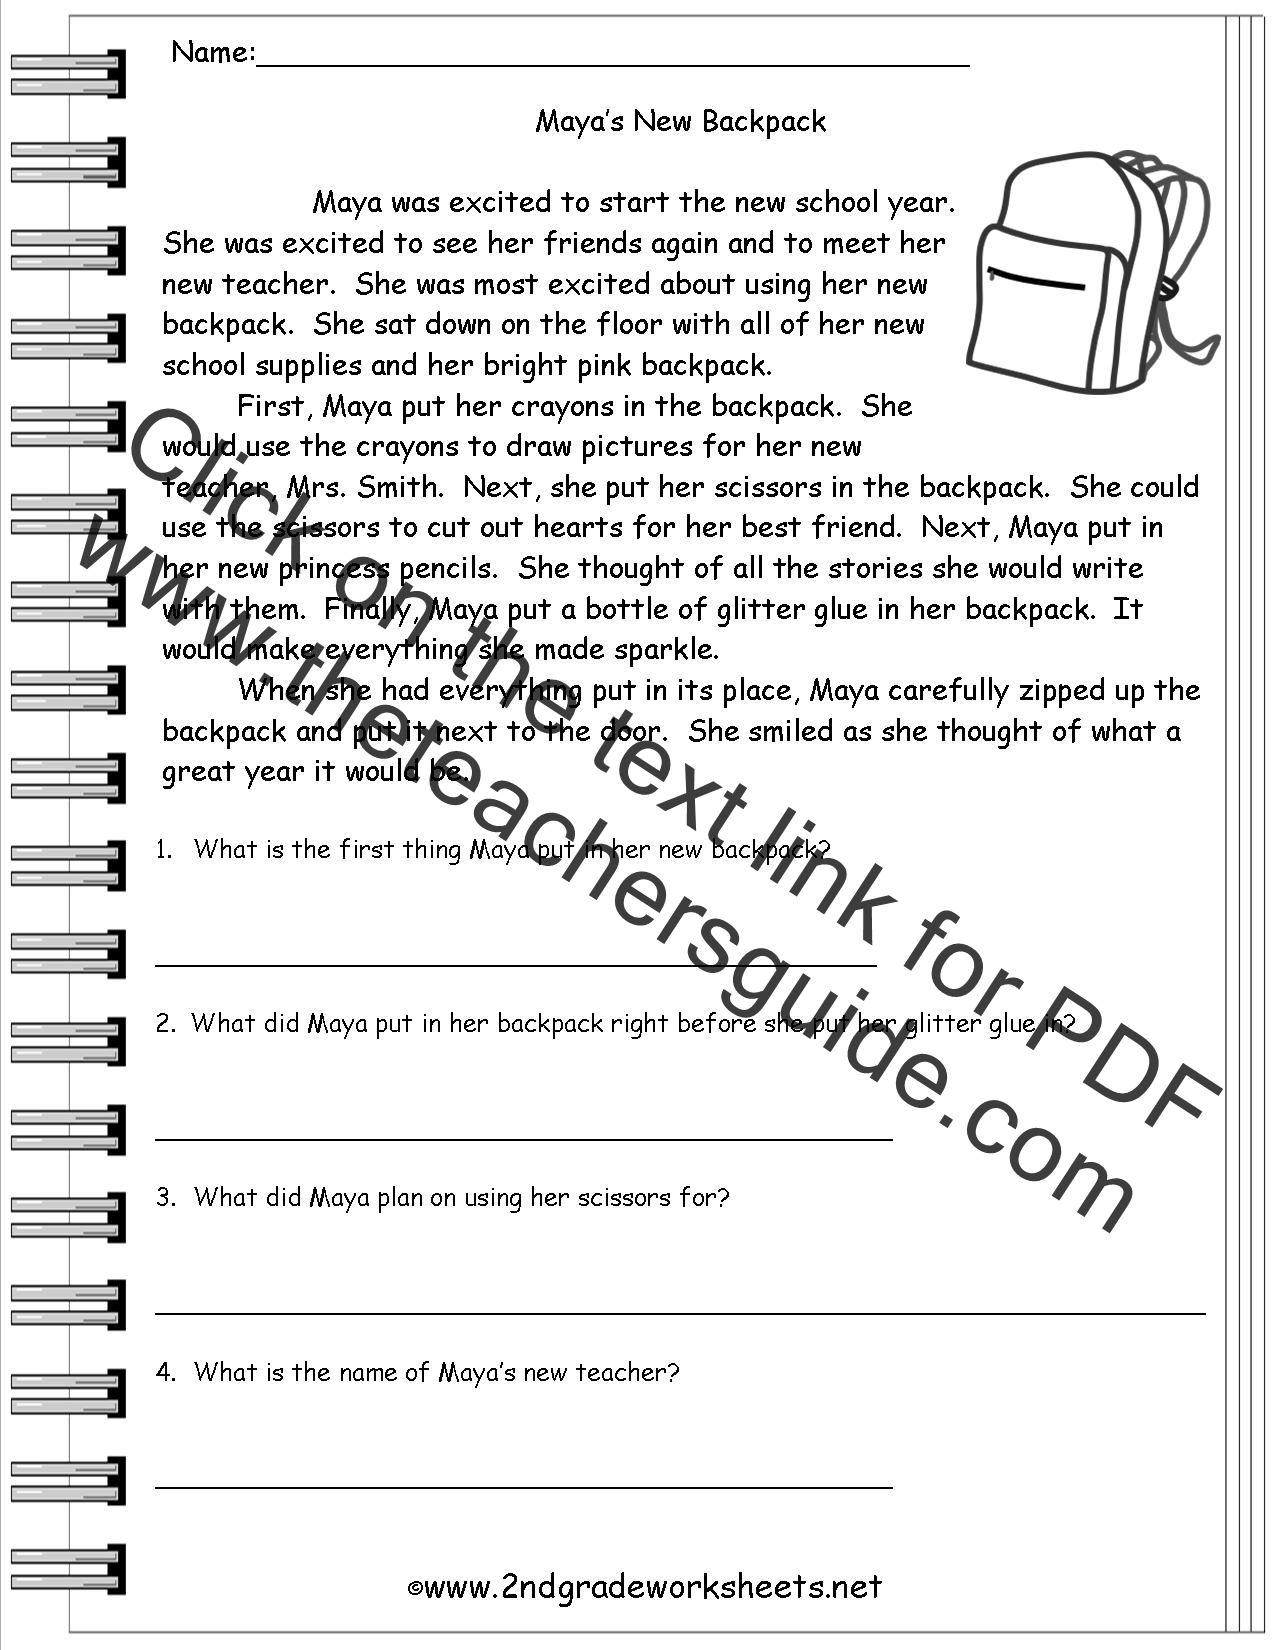 Worksheets 2nd Grade Reading Comprehension Worksheet reading worksheeets worksheets